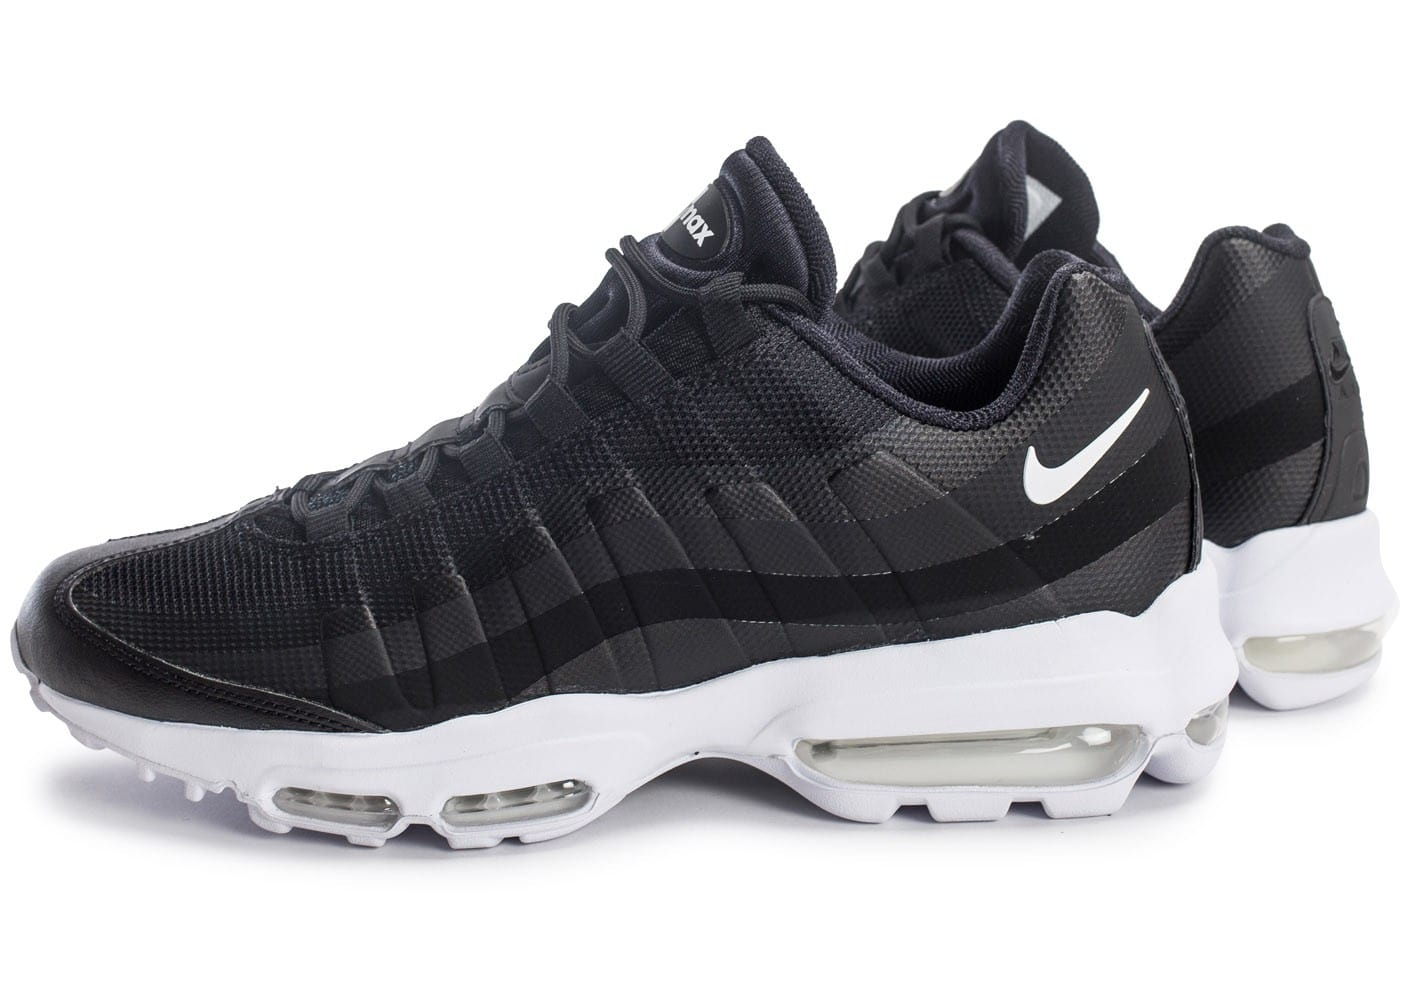 half price coupon codes latest Nike Air Max 95 Ultra Se noire - Chaussures Baskets homme ...